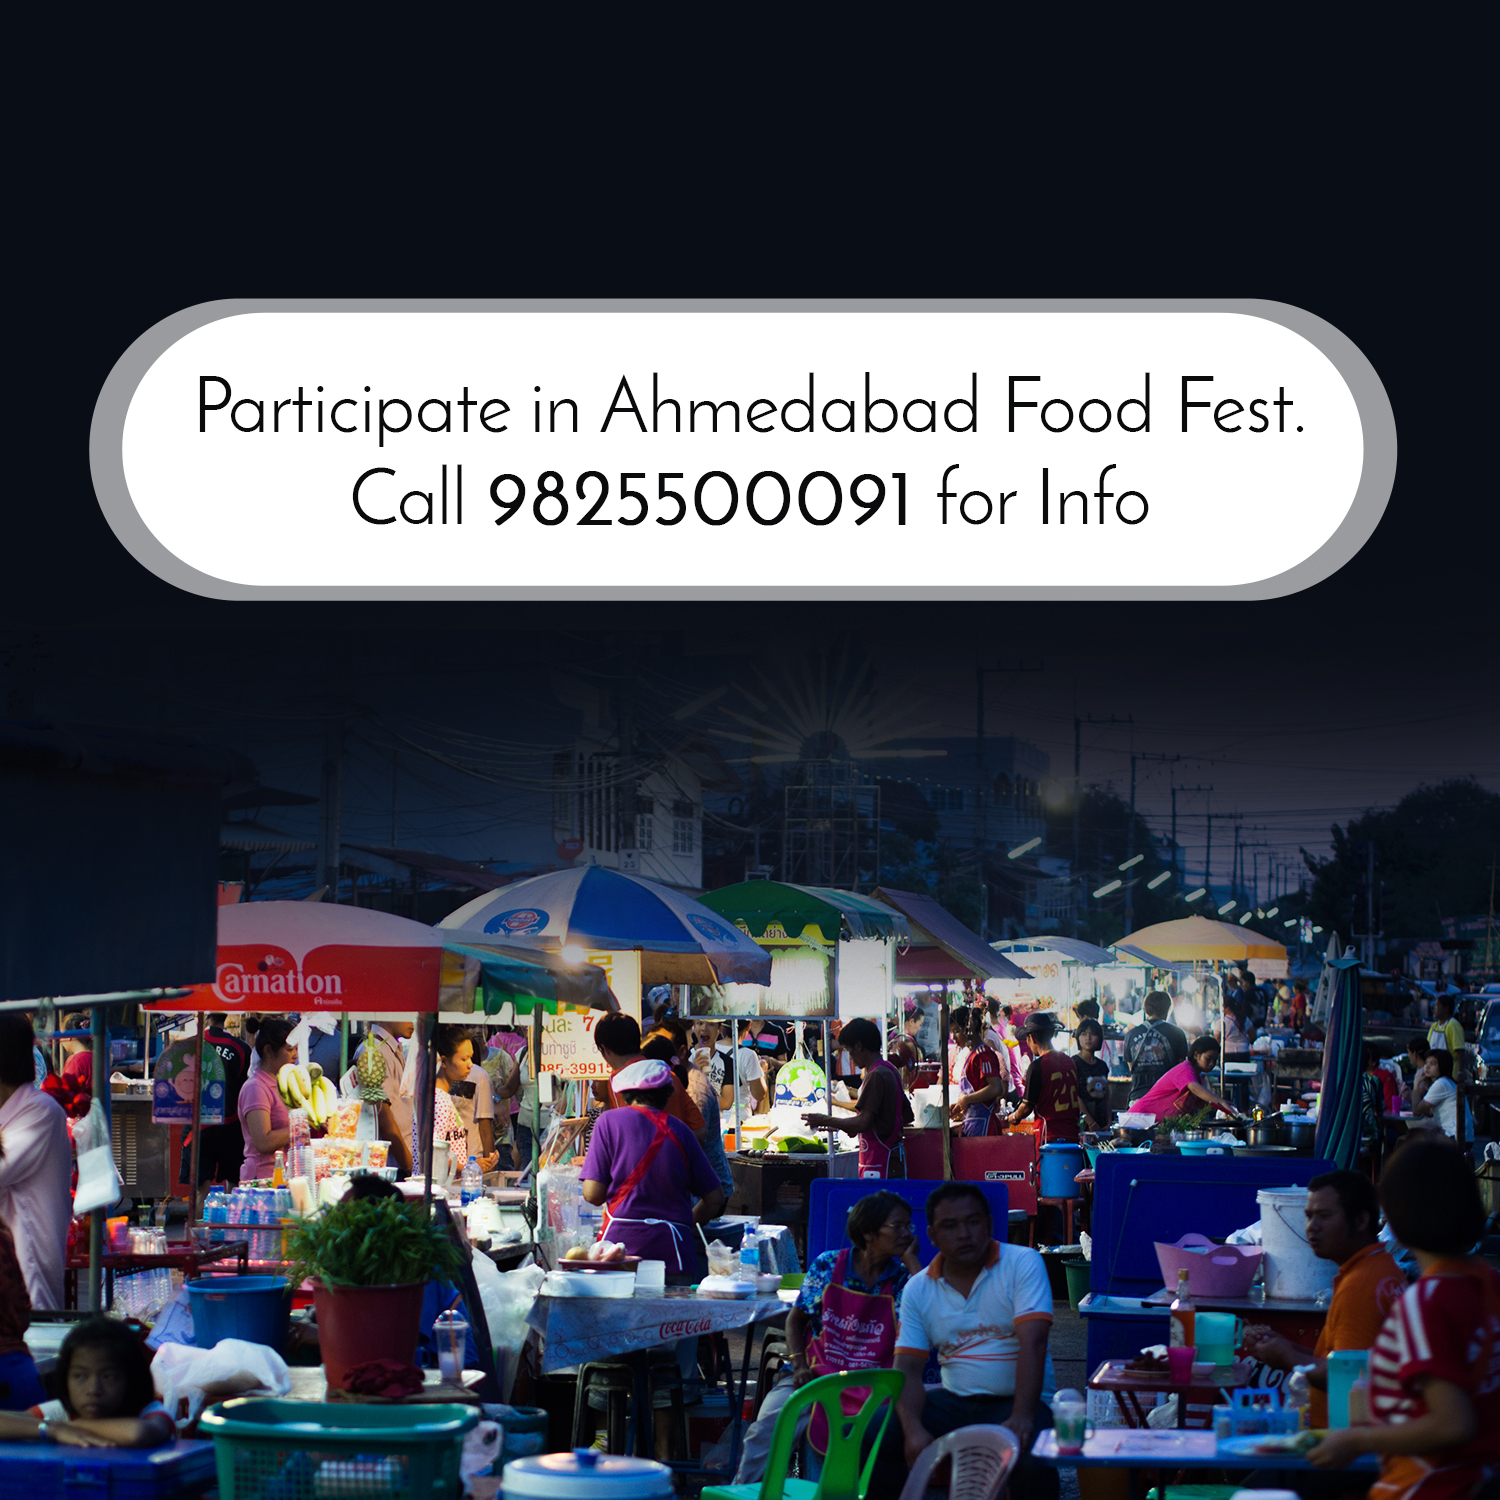 Last Chance to Participate in THE AHMEDABAD FOOD FESTIVAL